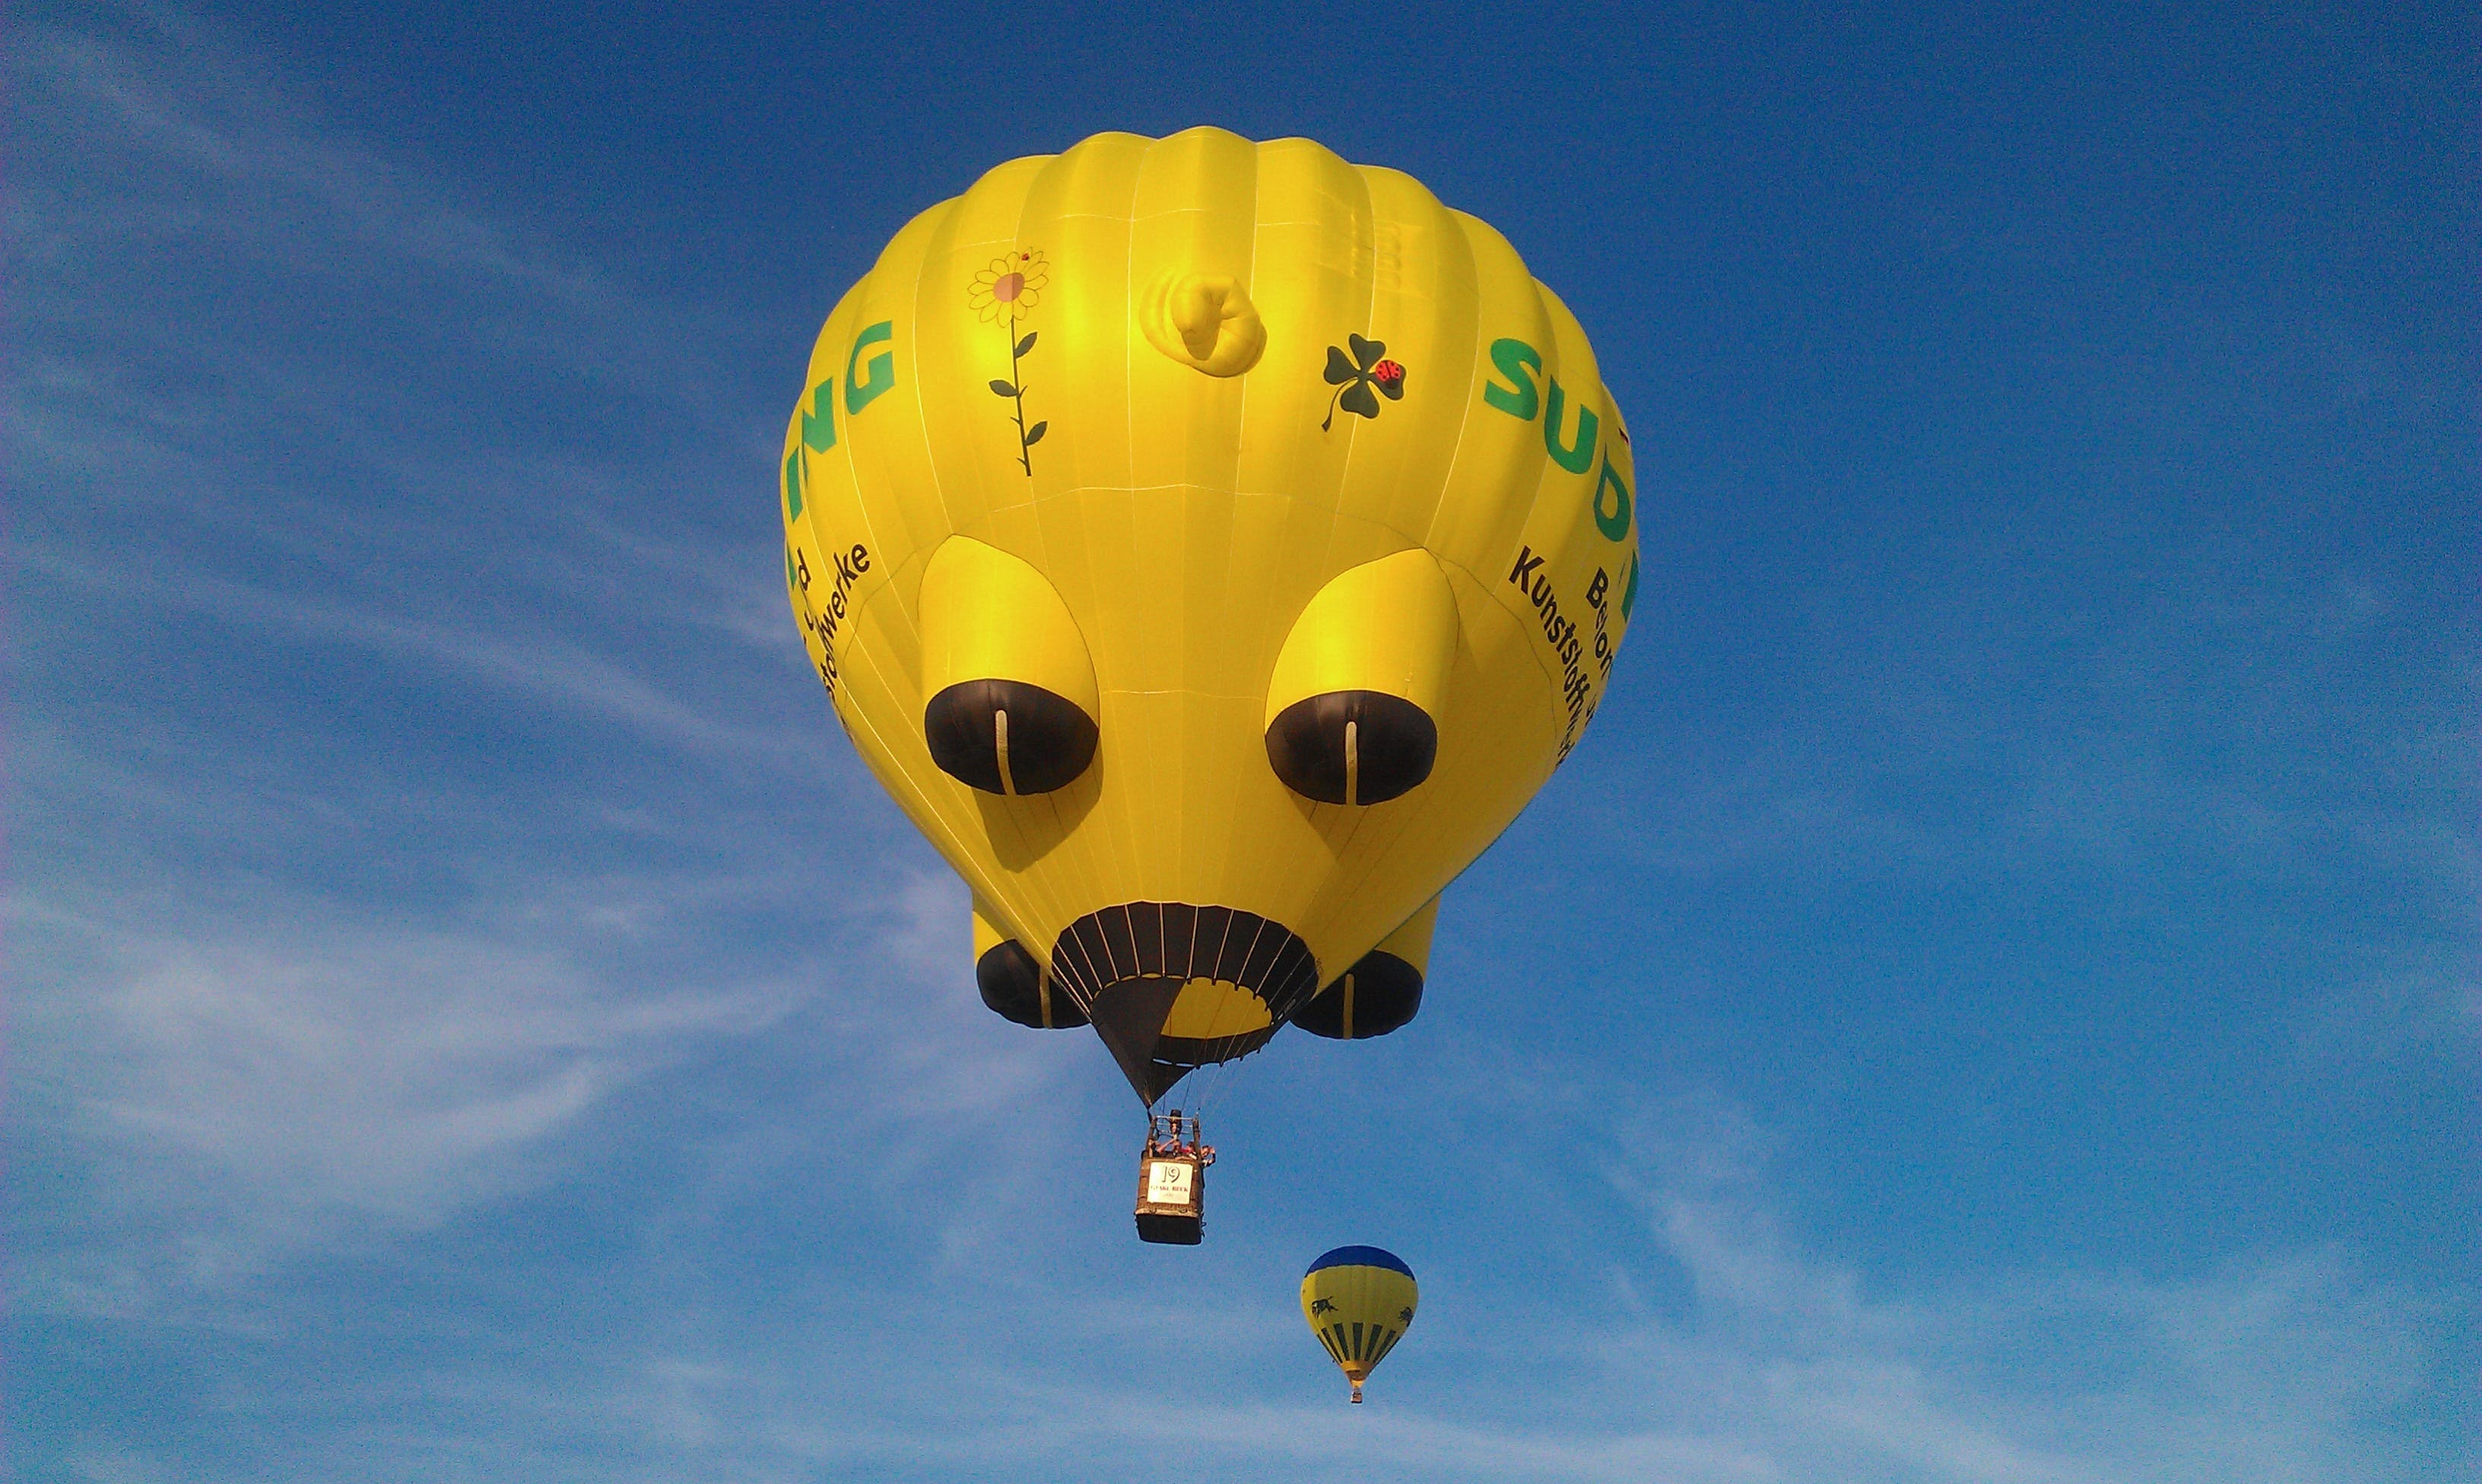 Yellow and Black Hot Air Balloons on Mid Air Under White Clouds Blue Sky during Daytime